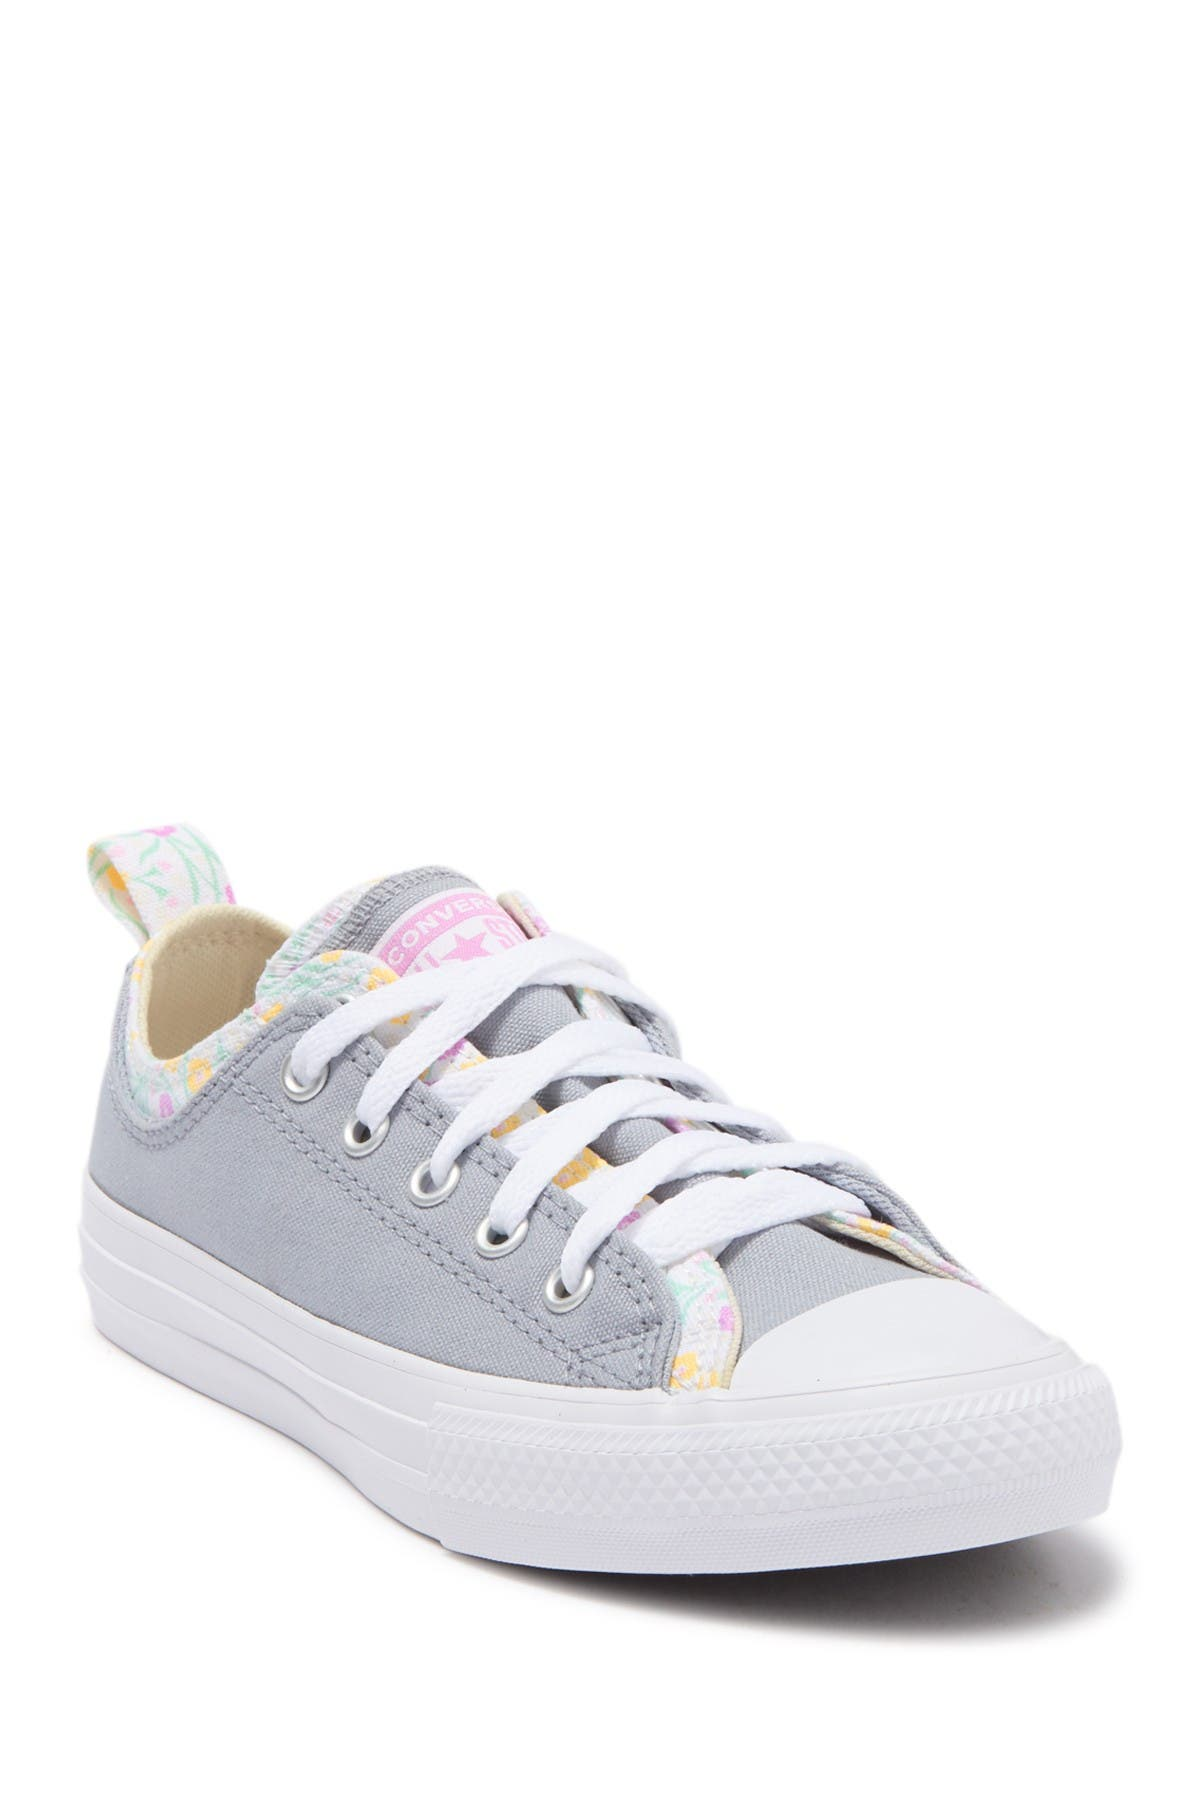 Image of Converse Chuck Taylor All Star Oxford Wolf Sneaker